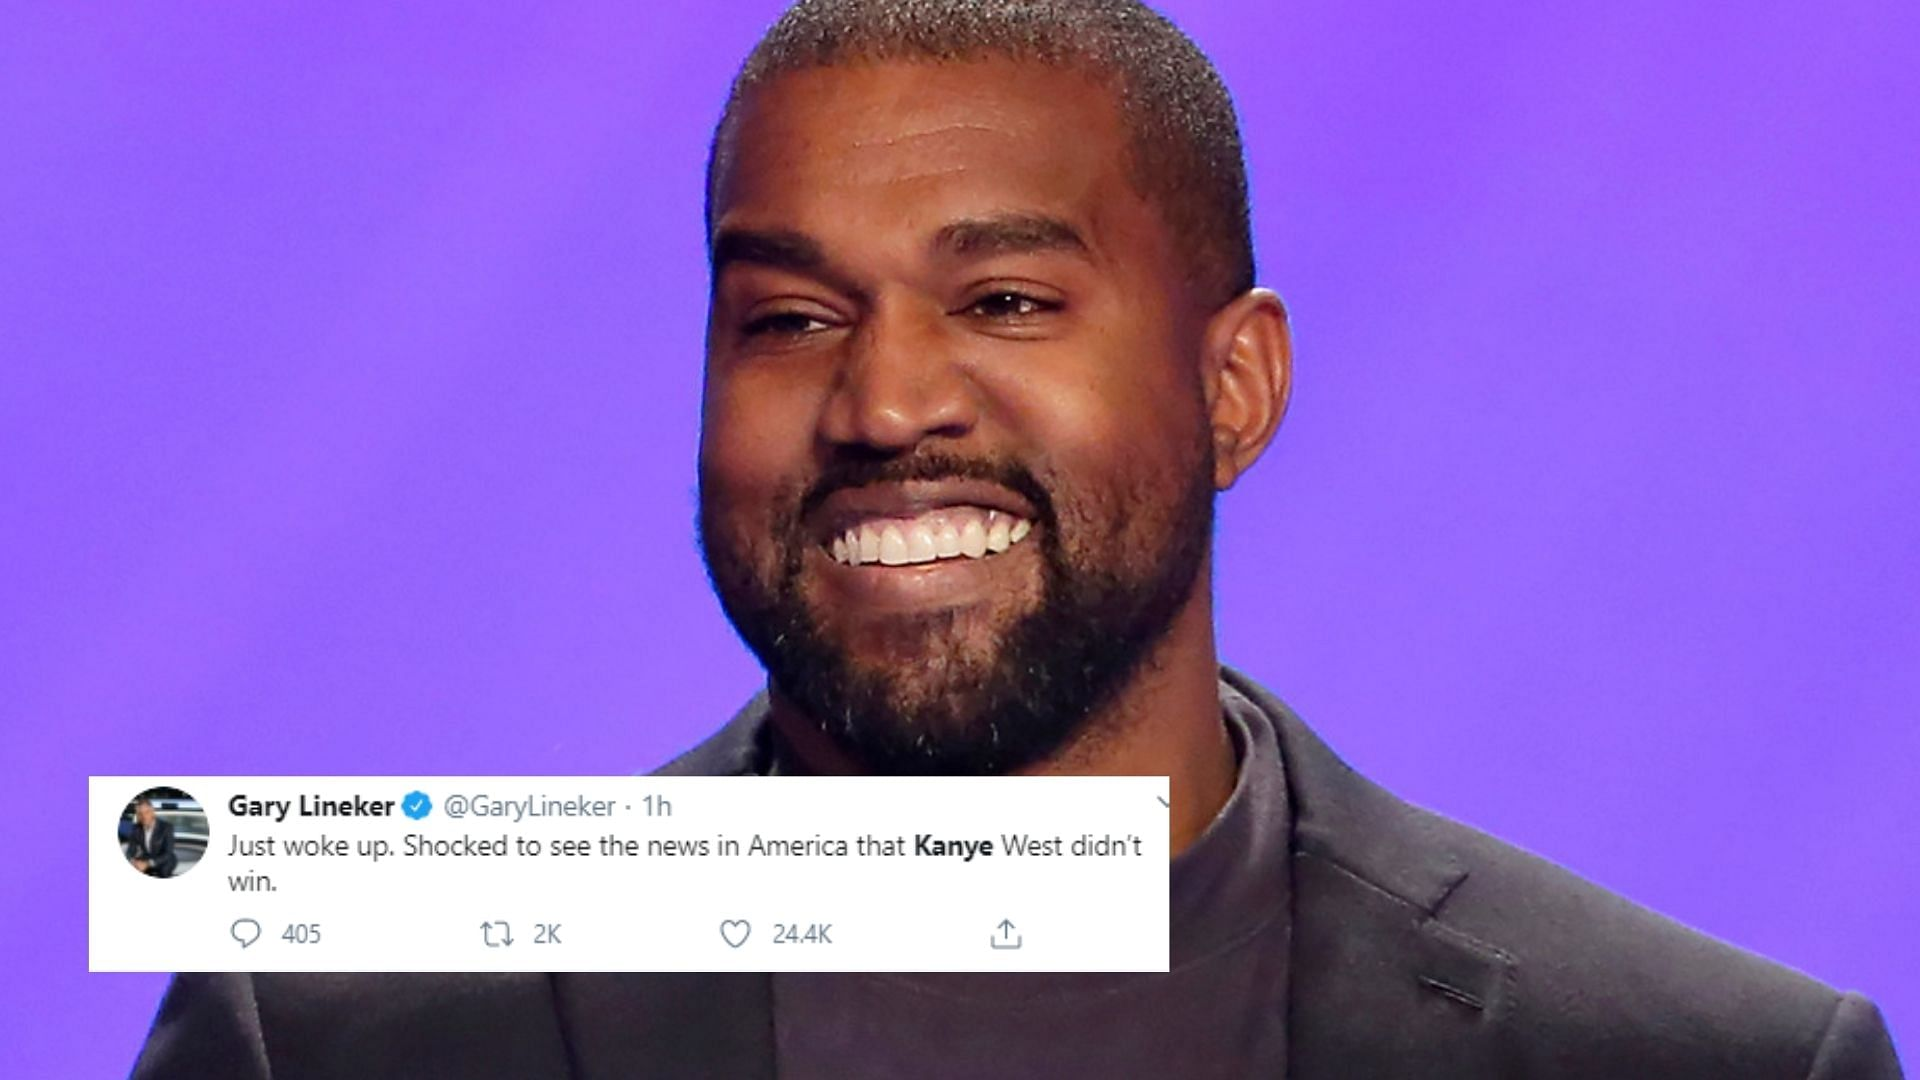 Twitter Floods With Memes After Kanye West Aims For 2024 Elections